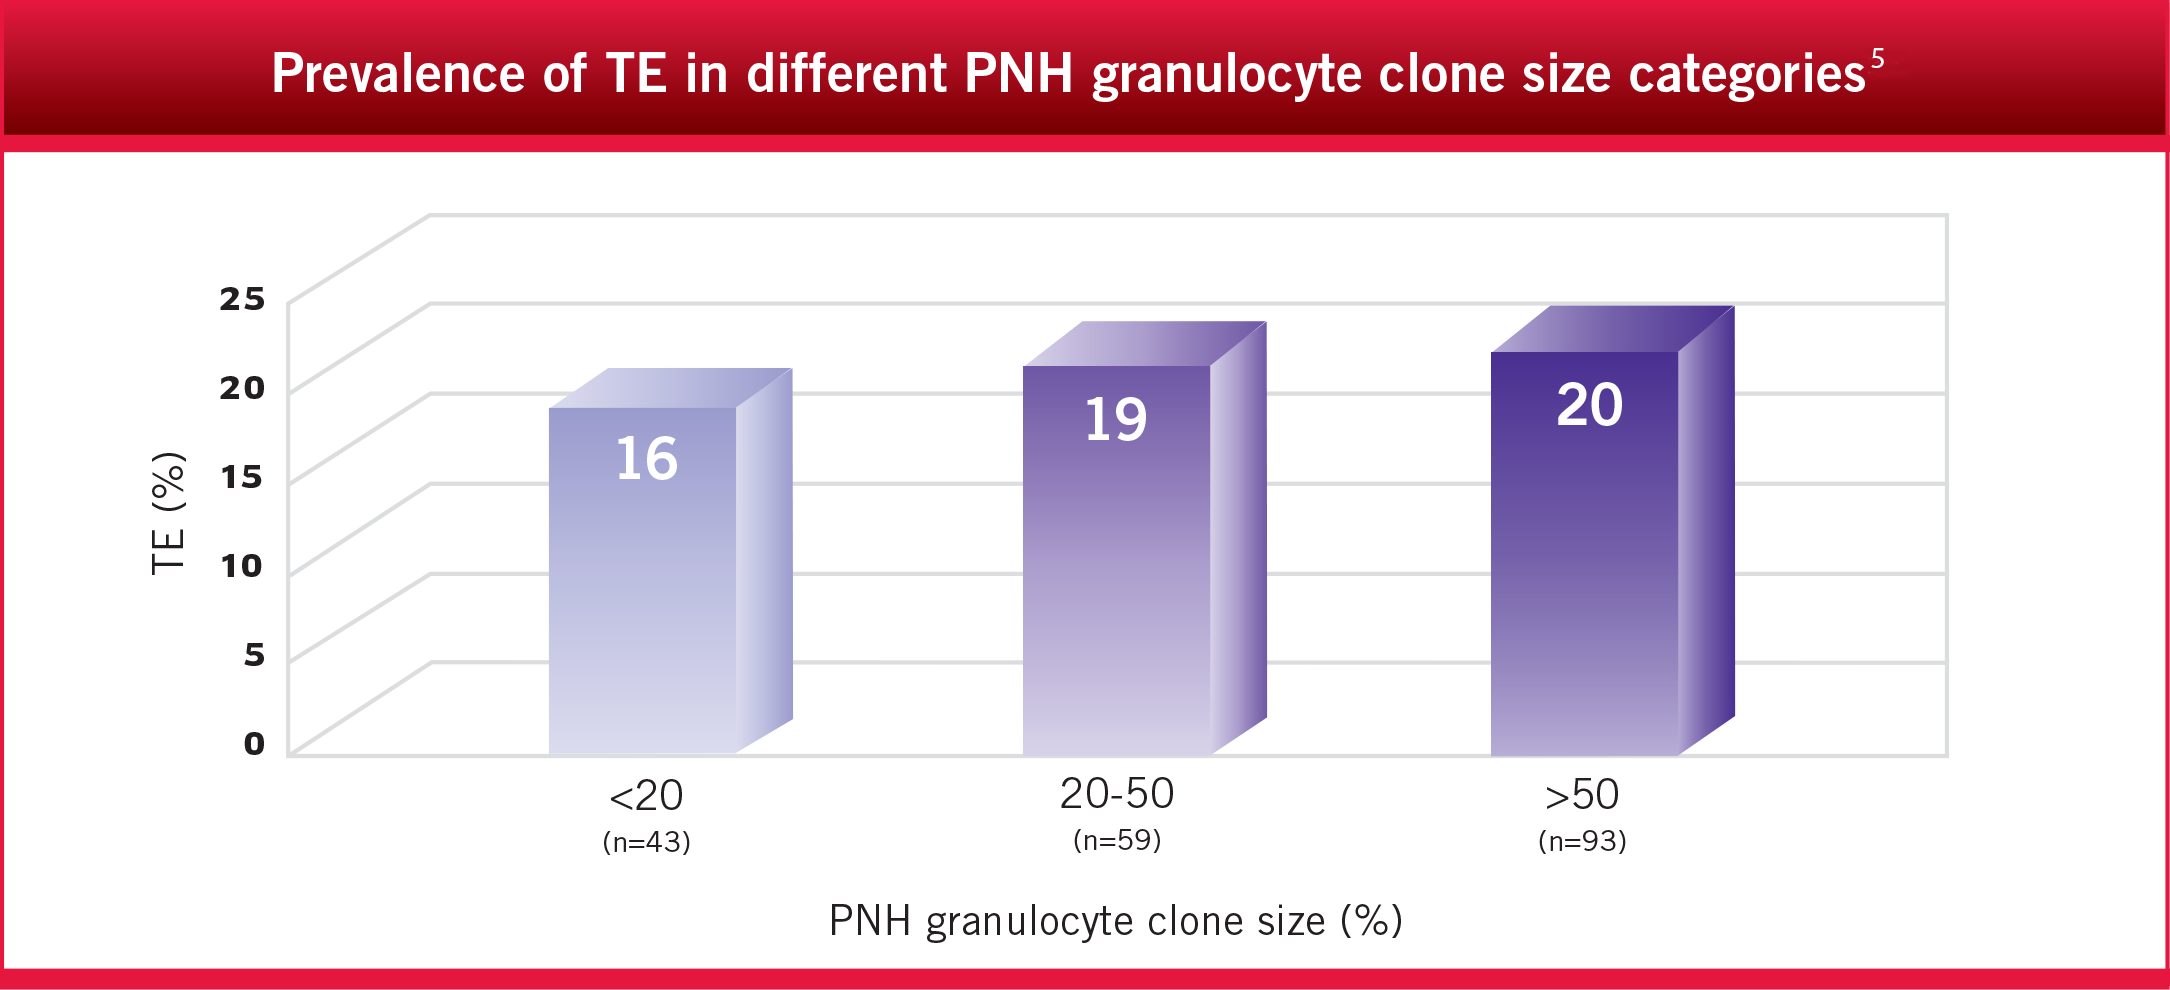 Prevalence of TE in different PNH granulocyte clone size categories8